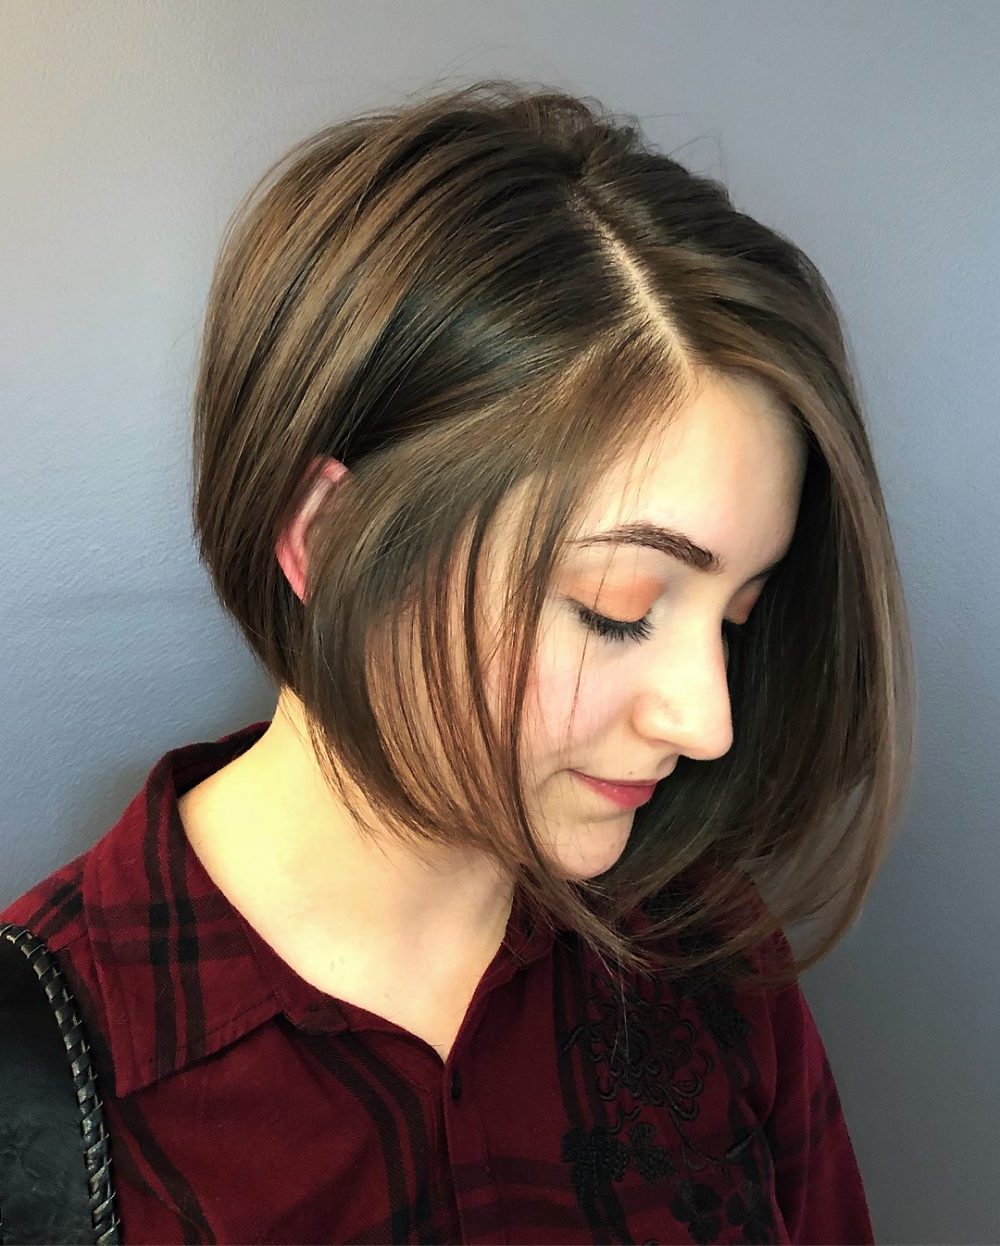 33 Flattering Short Hairstyles For Round Faces In 2018 Intended For Short Hairstyles For Heavy Round Faces (View 4 of 25)